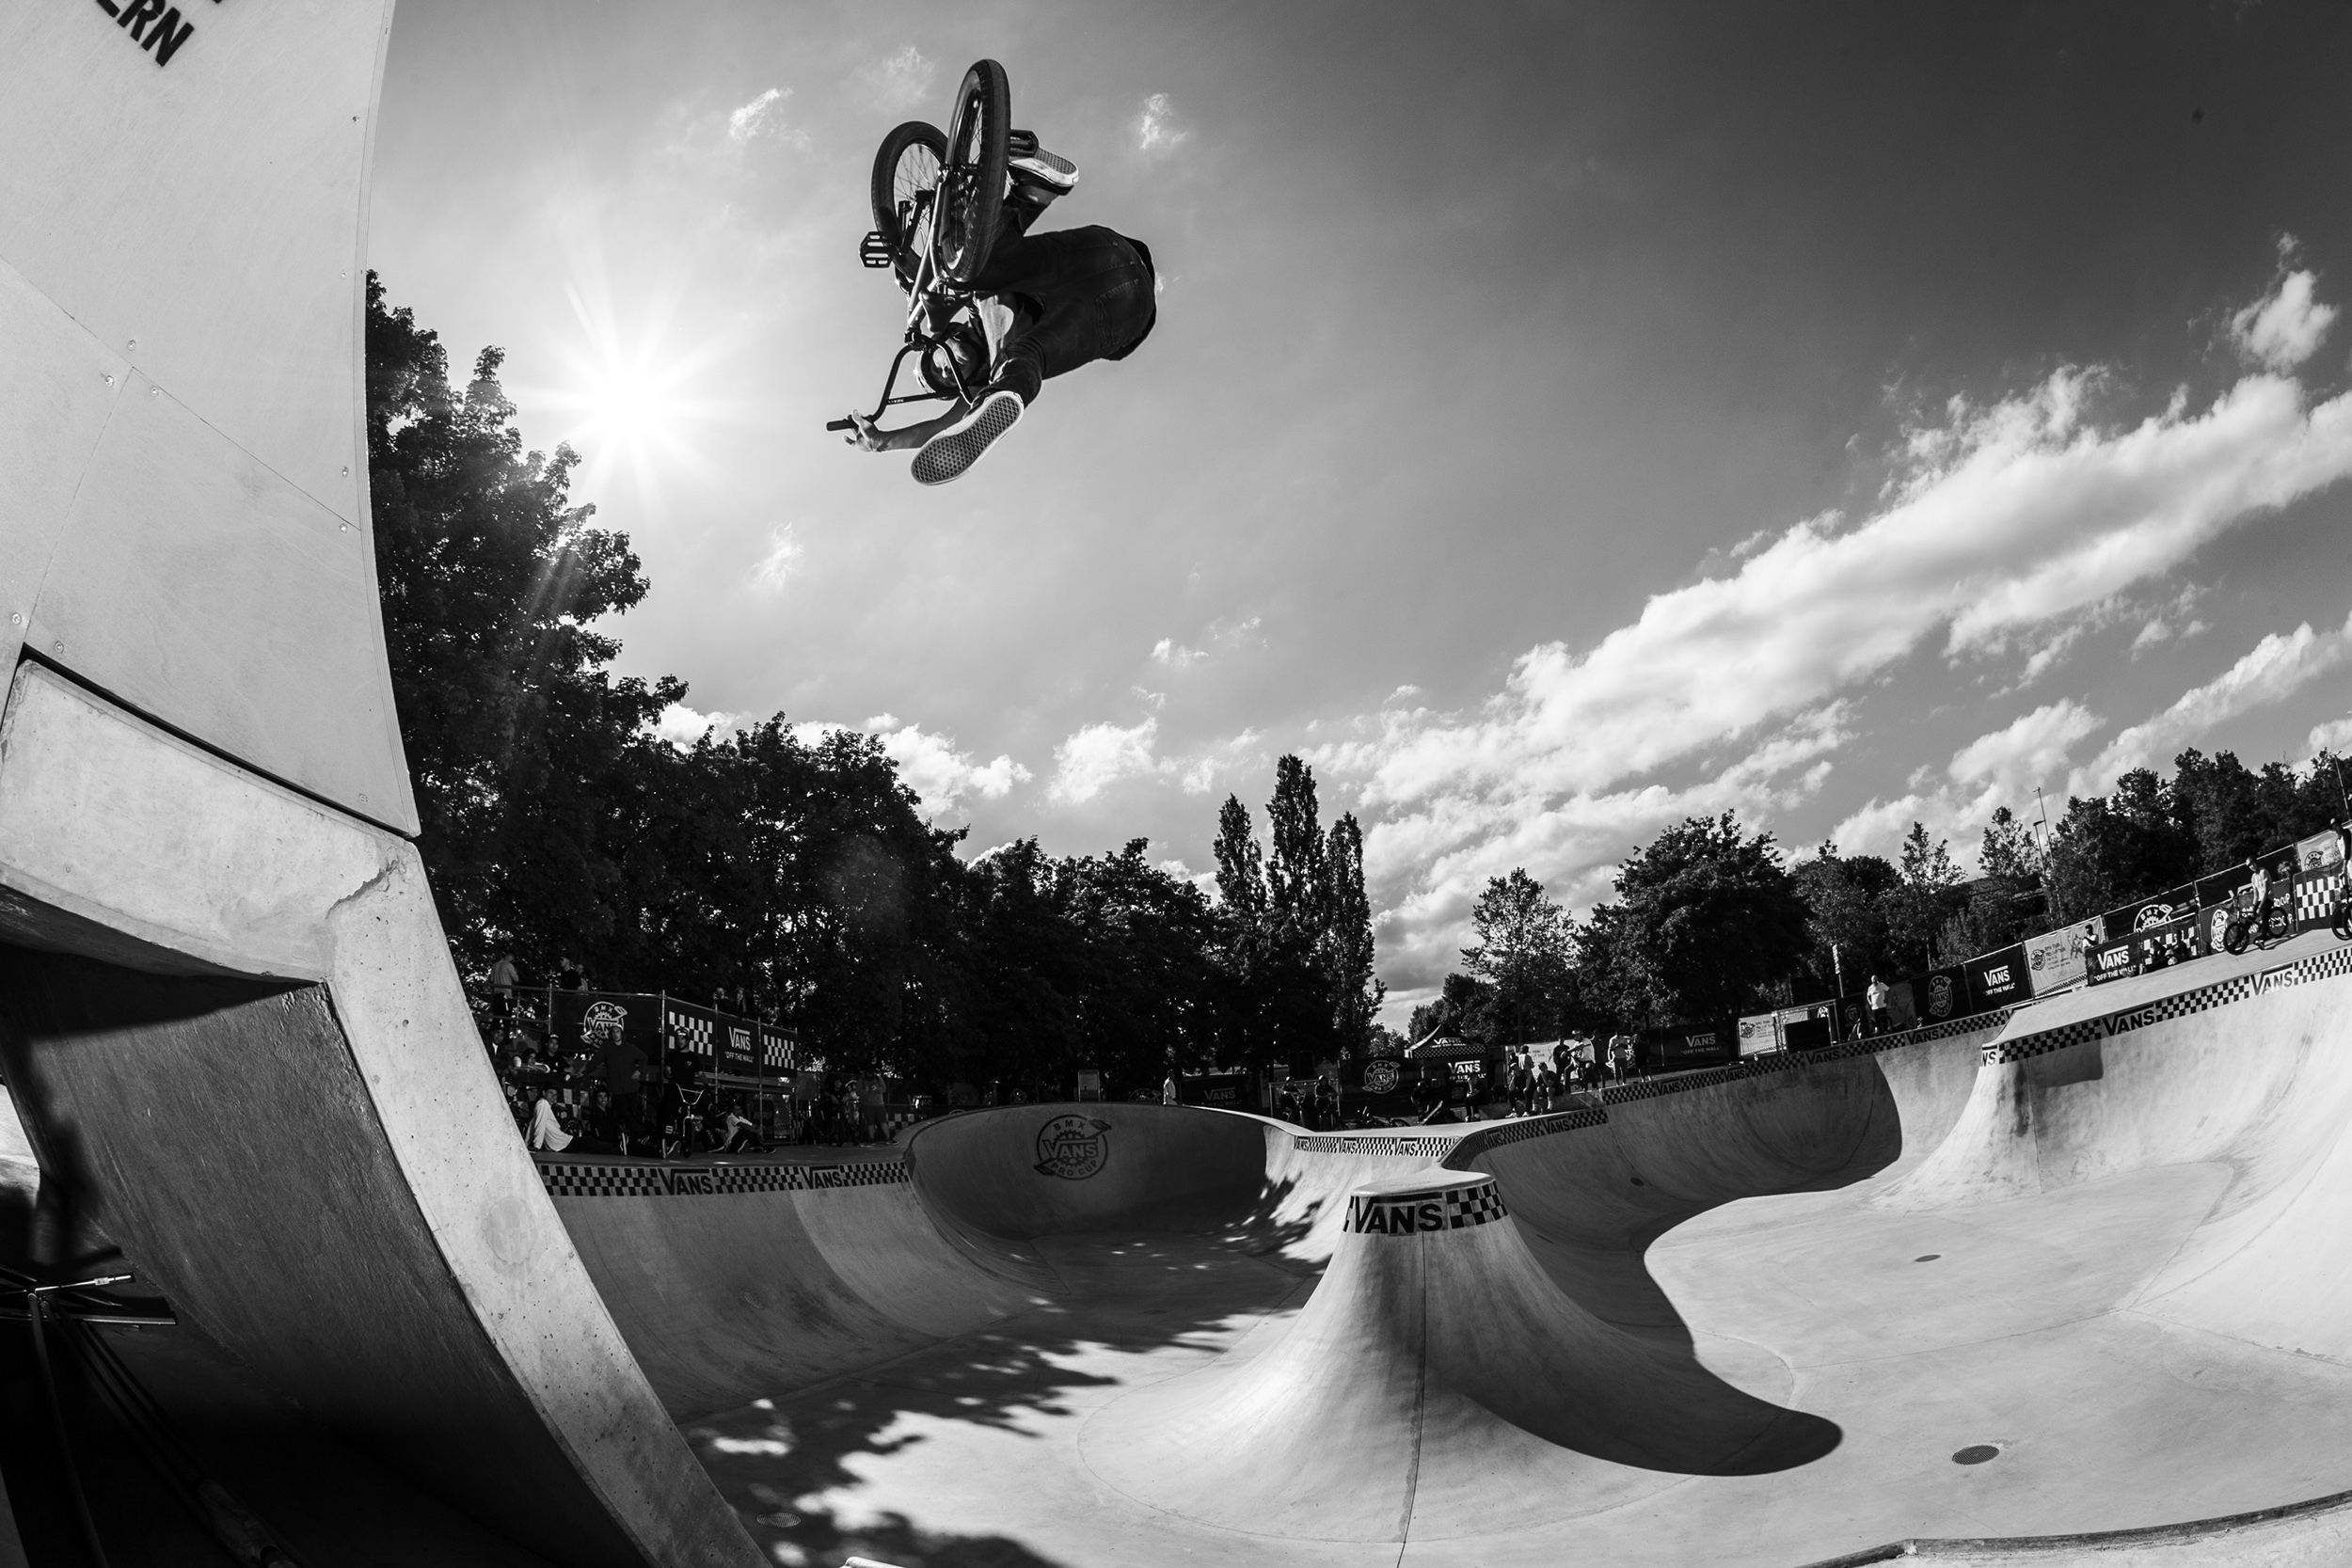 DigBMX - Vans BMX Pro Cup Stuttgart 2019 - Everything you need to know